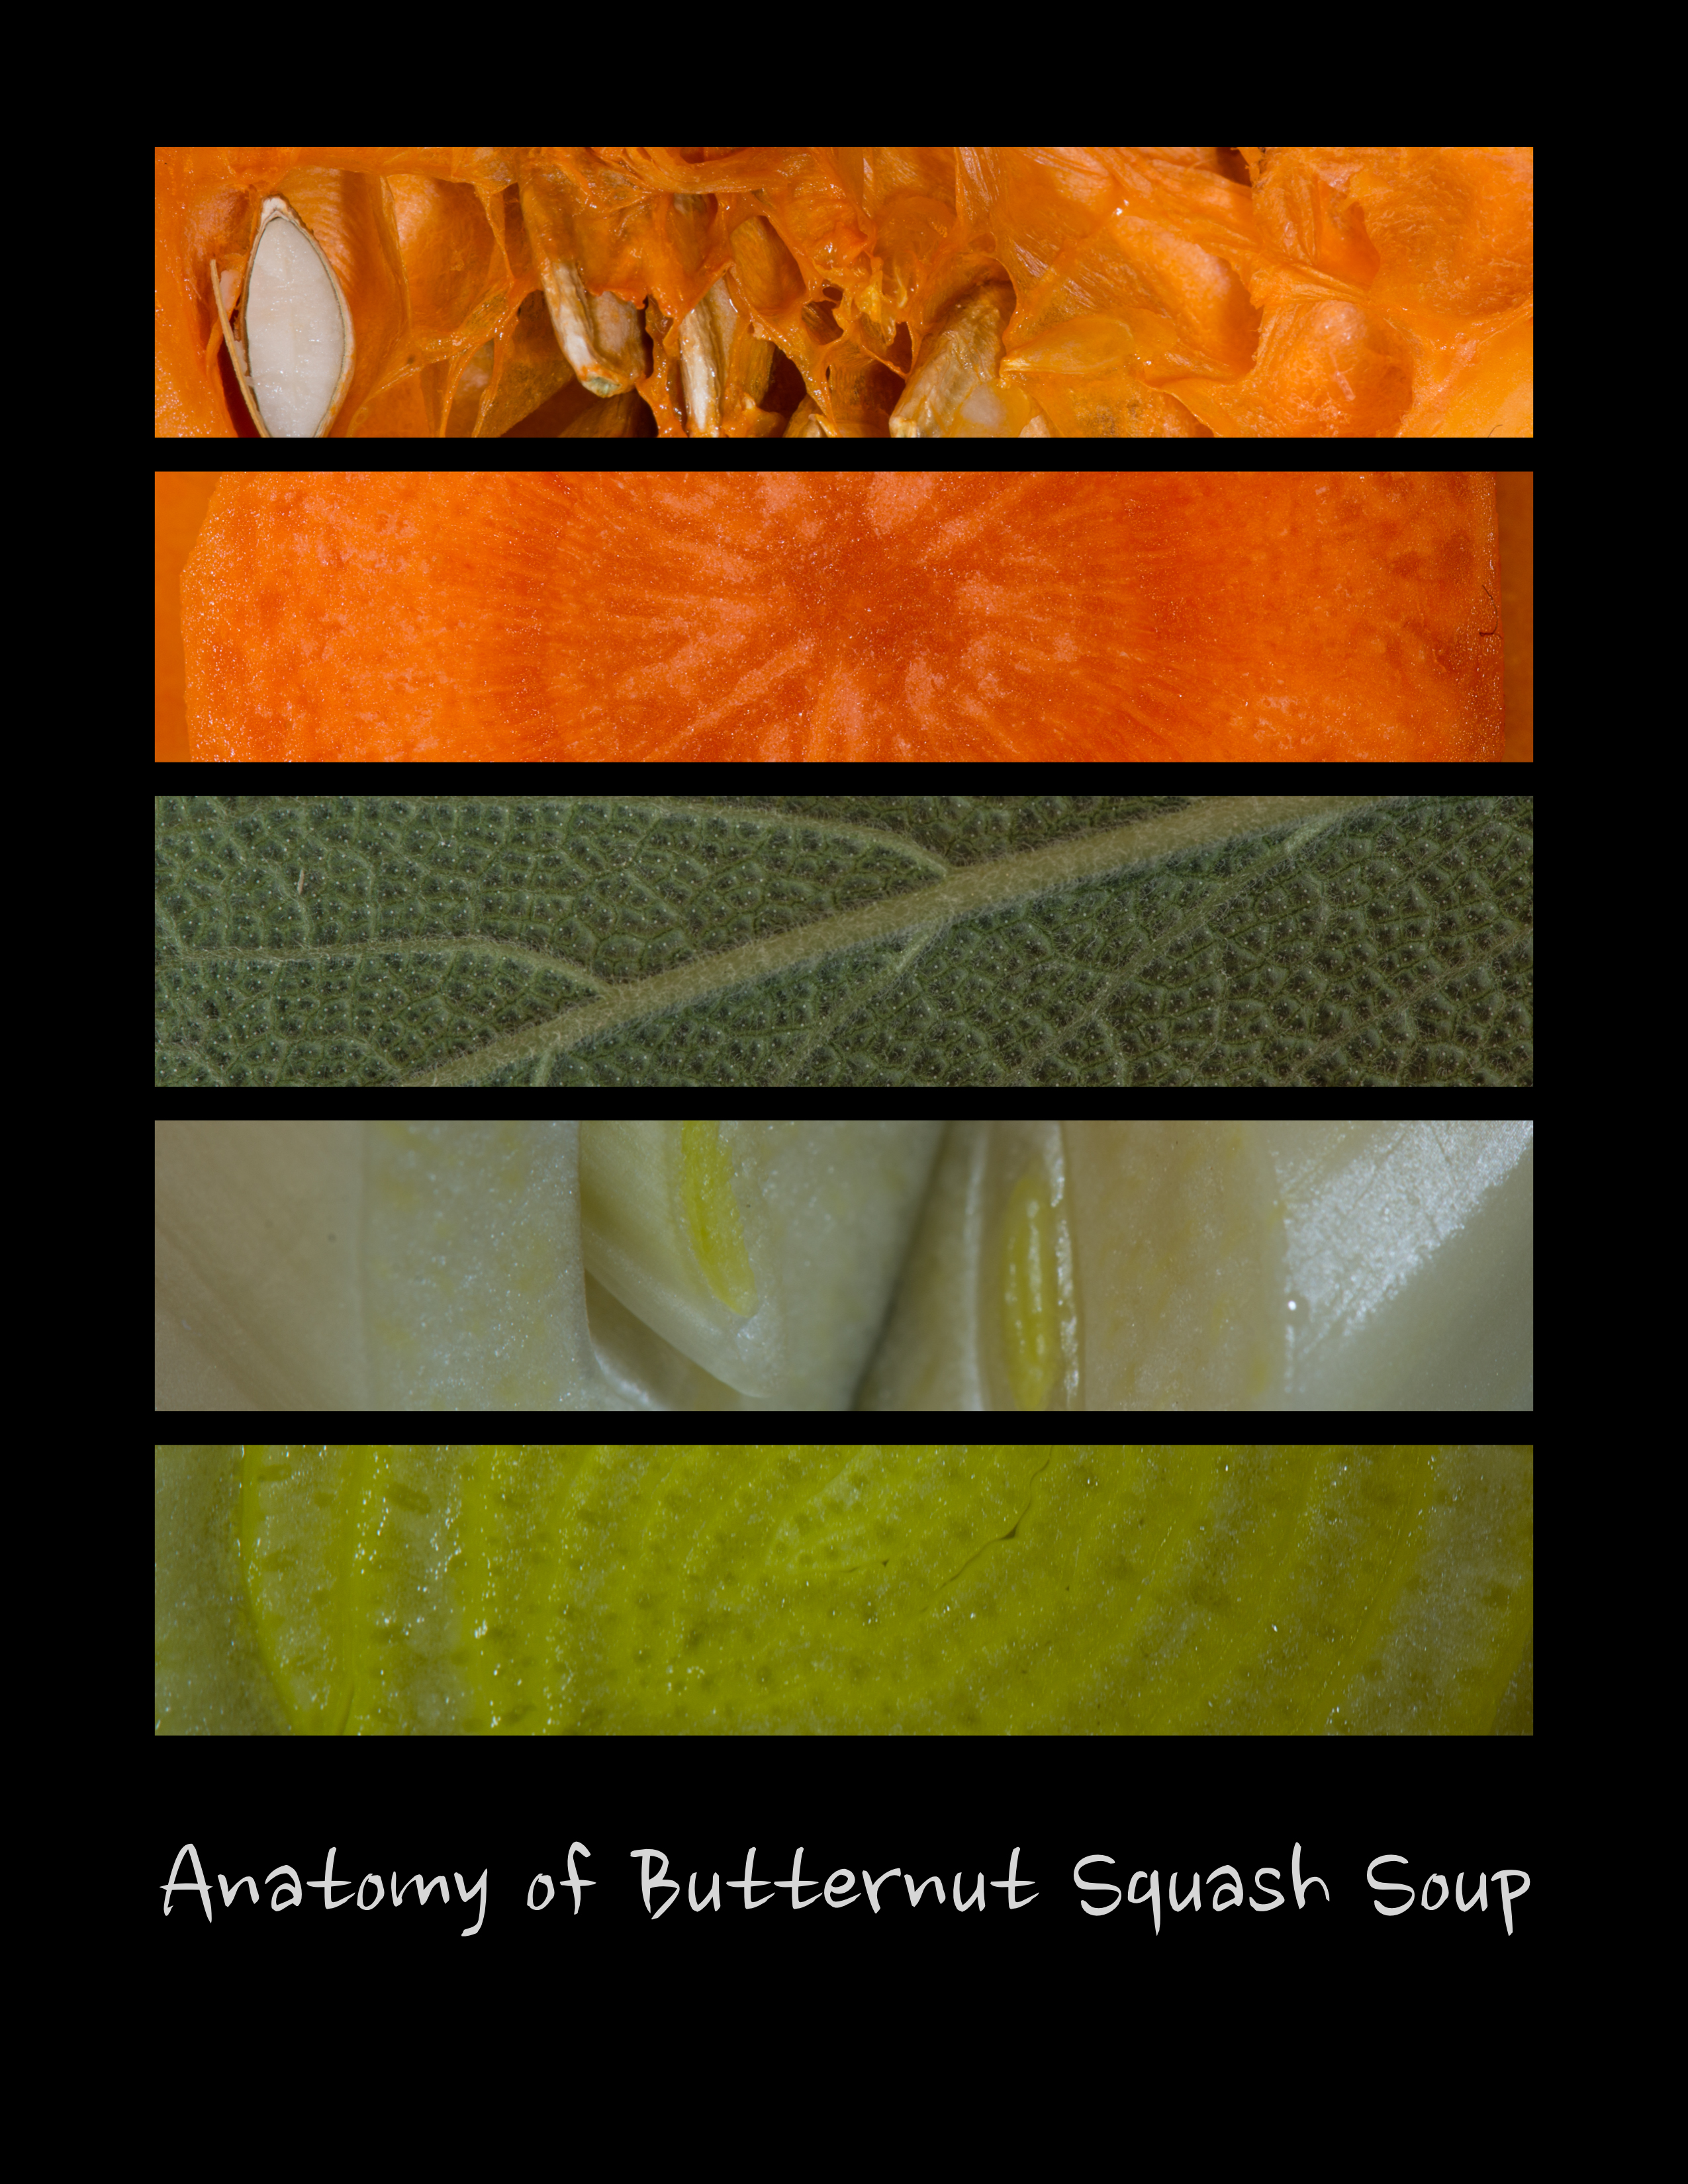 Anatomy of Butternut Squash Soup